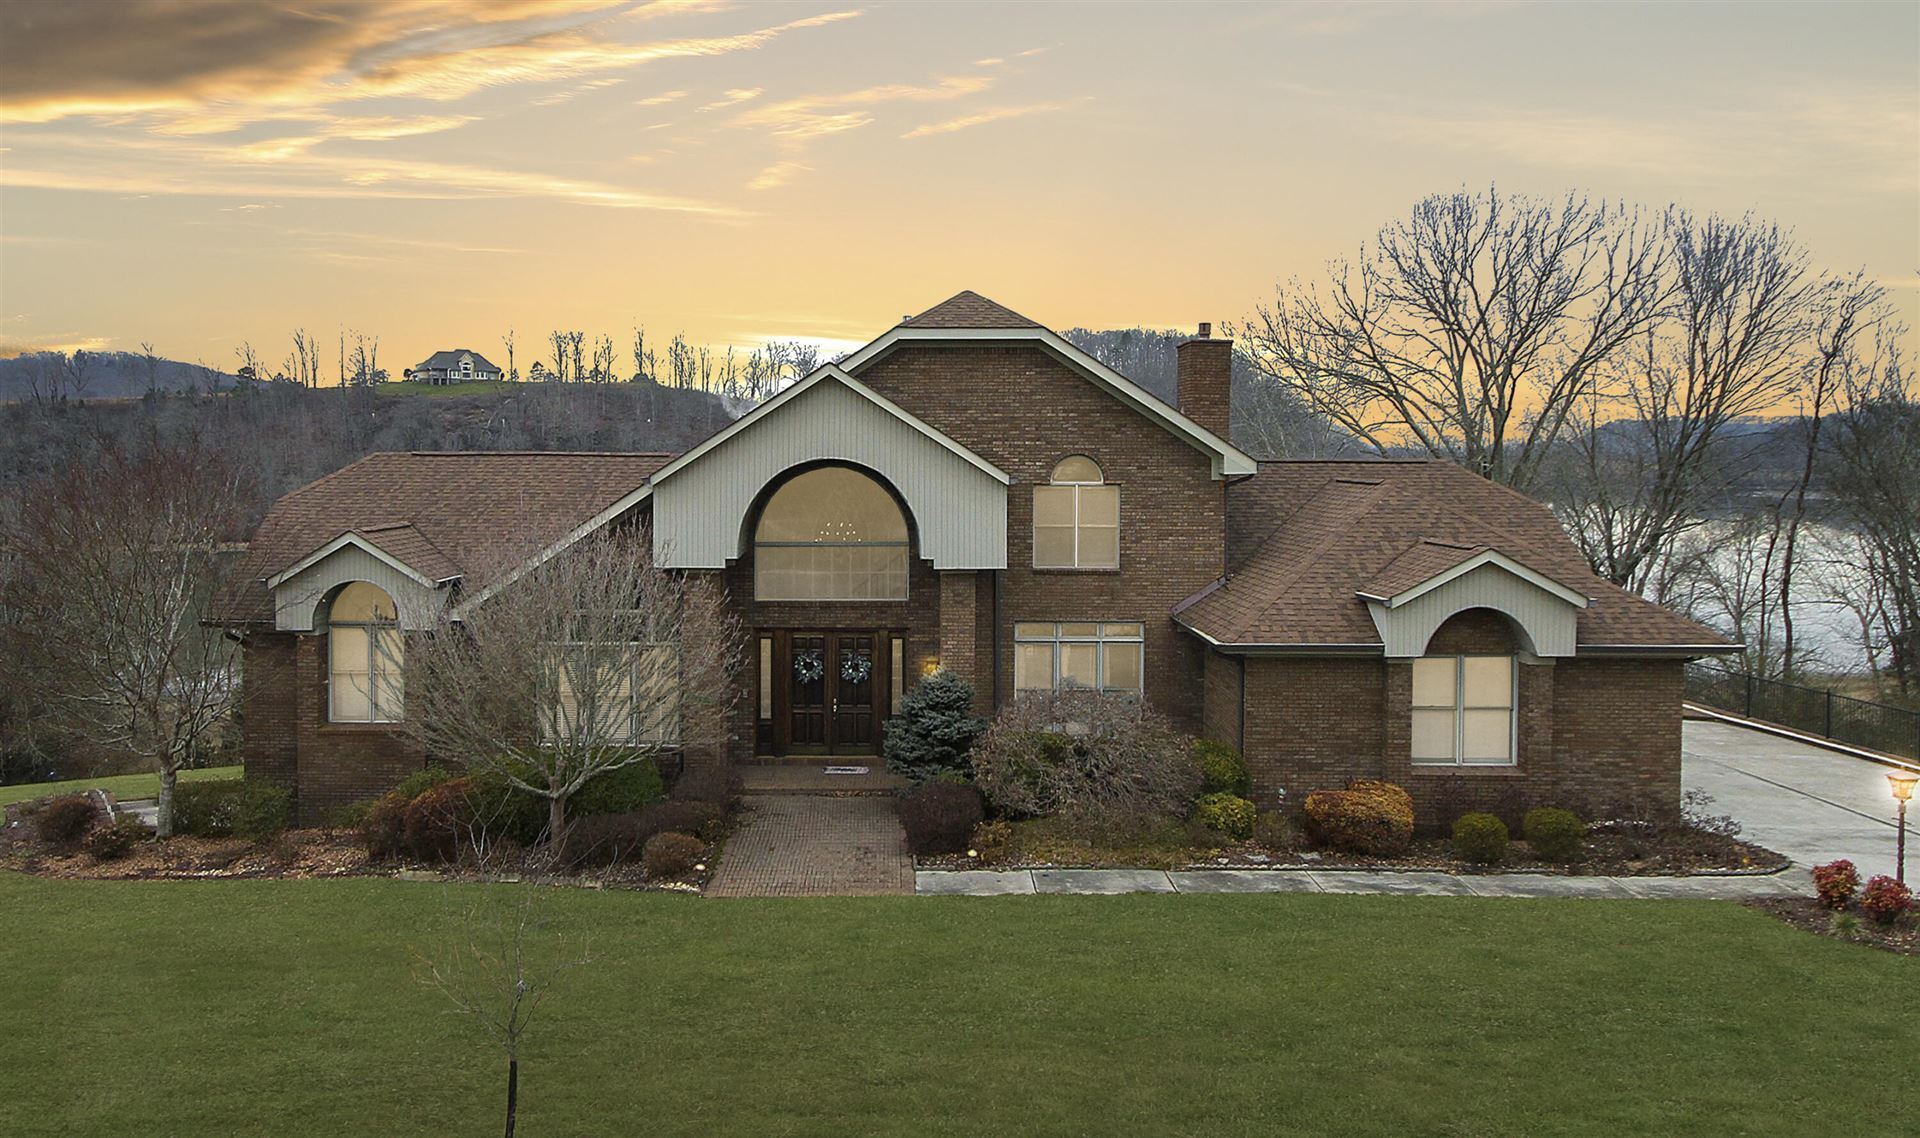 Photo for 198 Marble Bluff Drive, Kingston, TN 37763 (MLS # 1143097)